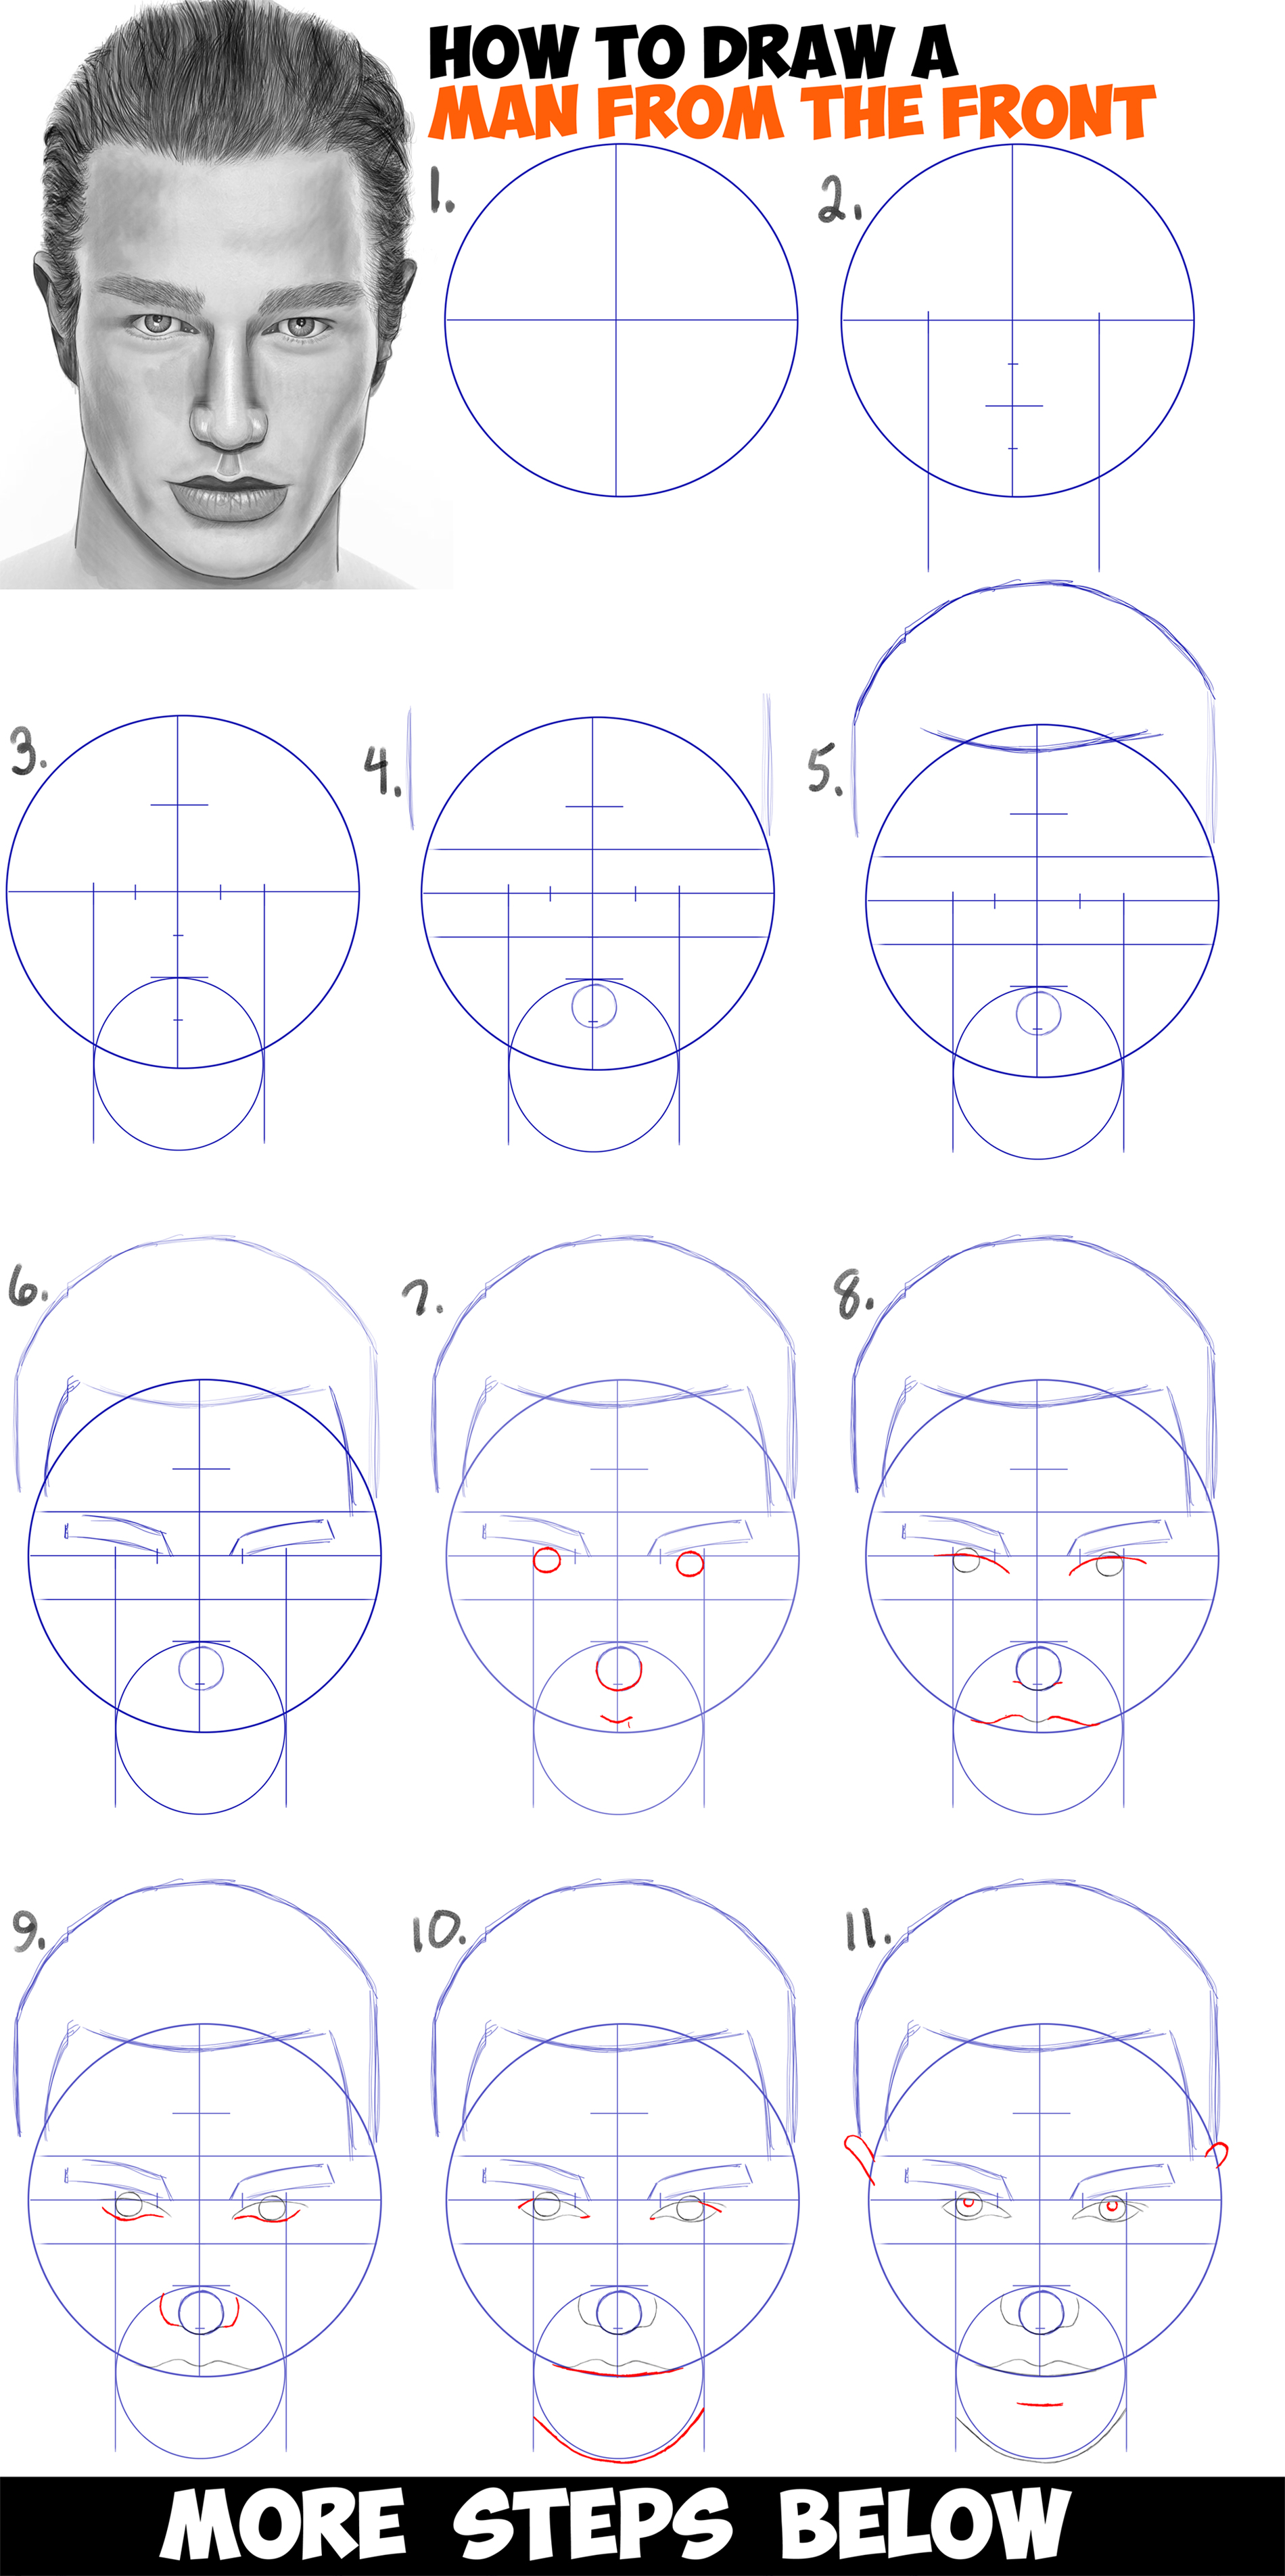 step by step drawing instructions